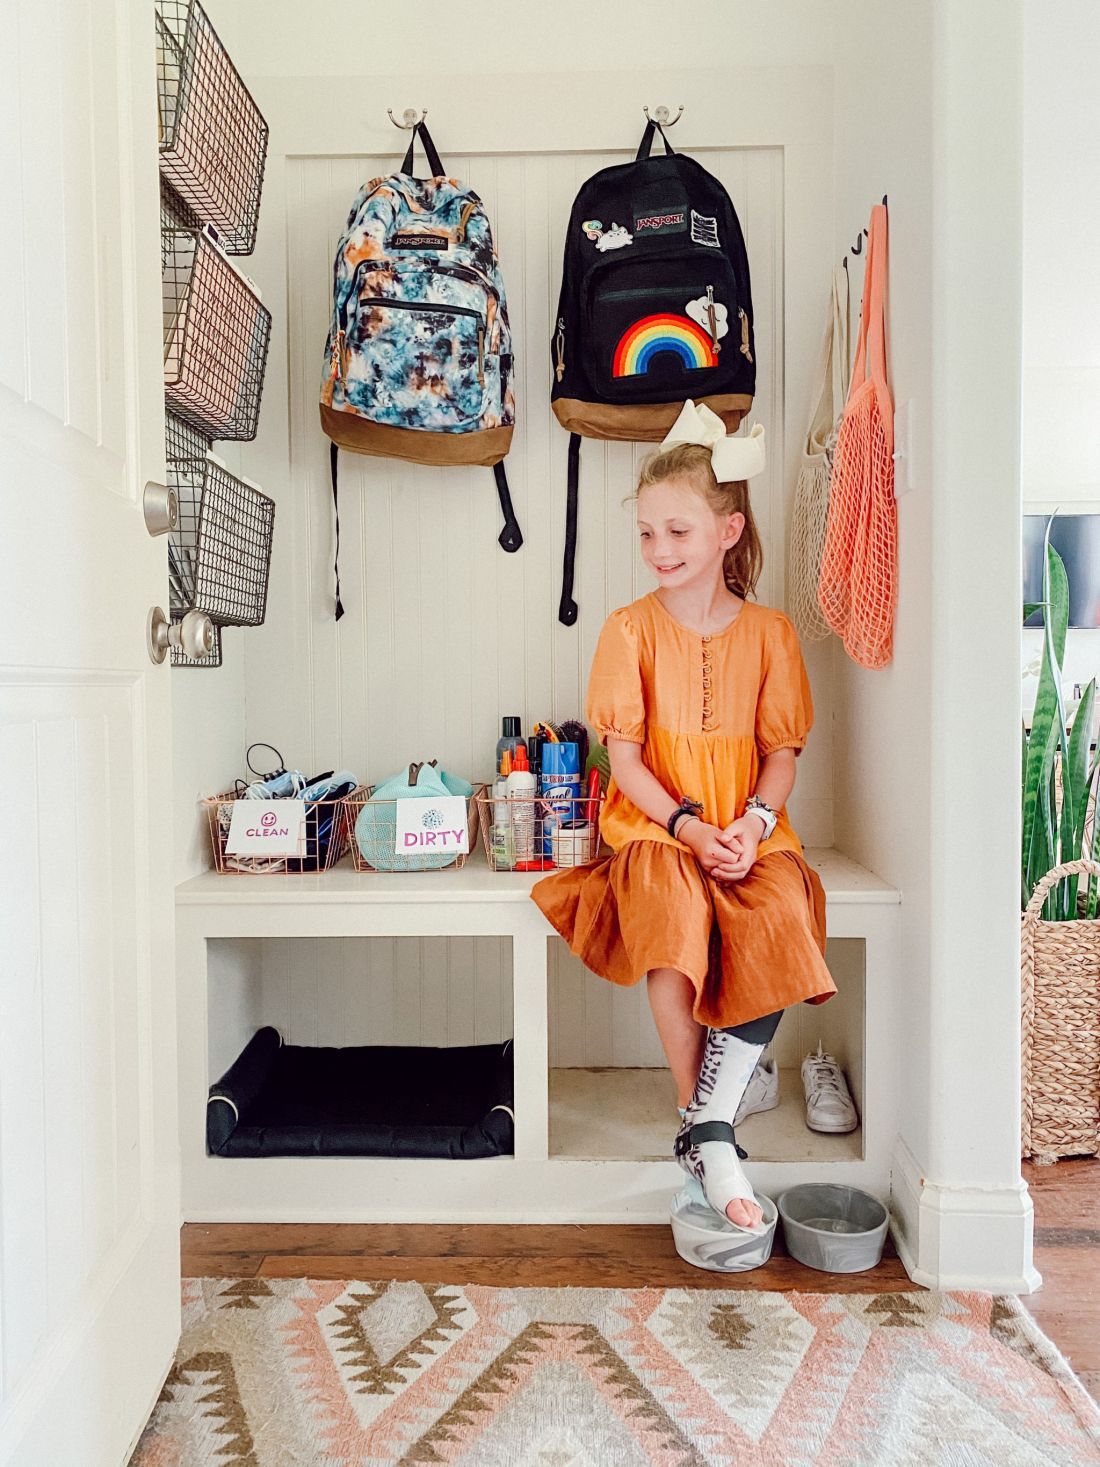 Back to School Shopping Guide by popular Nashville motherhood blog, Modern Day Moguls: image of a girl wearing a orange dress and large cream bow and sitting on a white bench and next to wire baskets filled with various supplies and two Jansport backpacks hanging on wall mounted hooks.